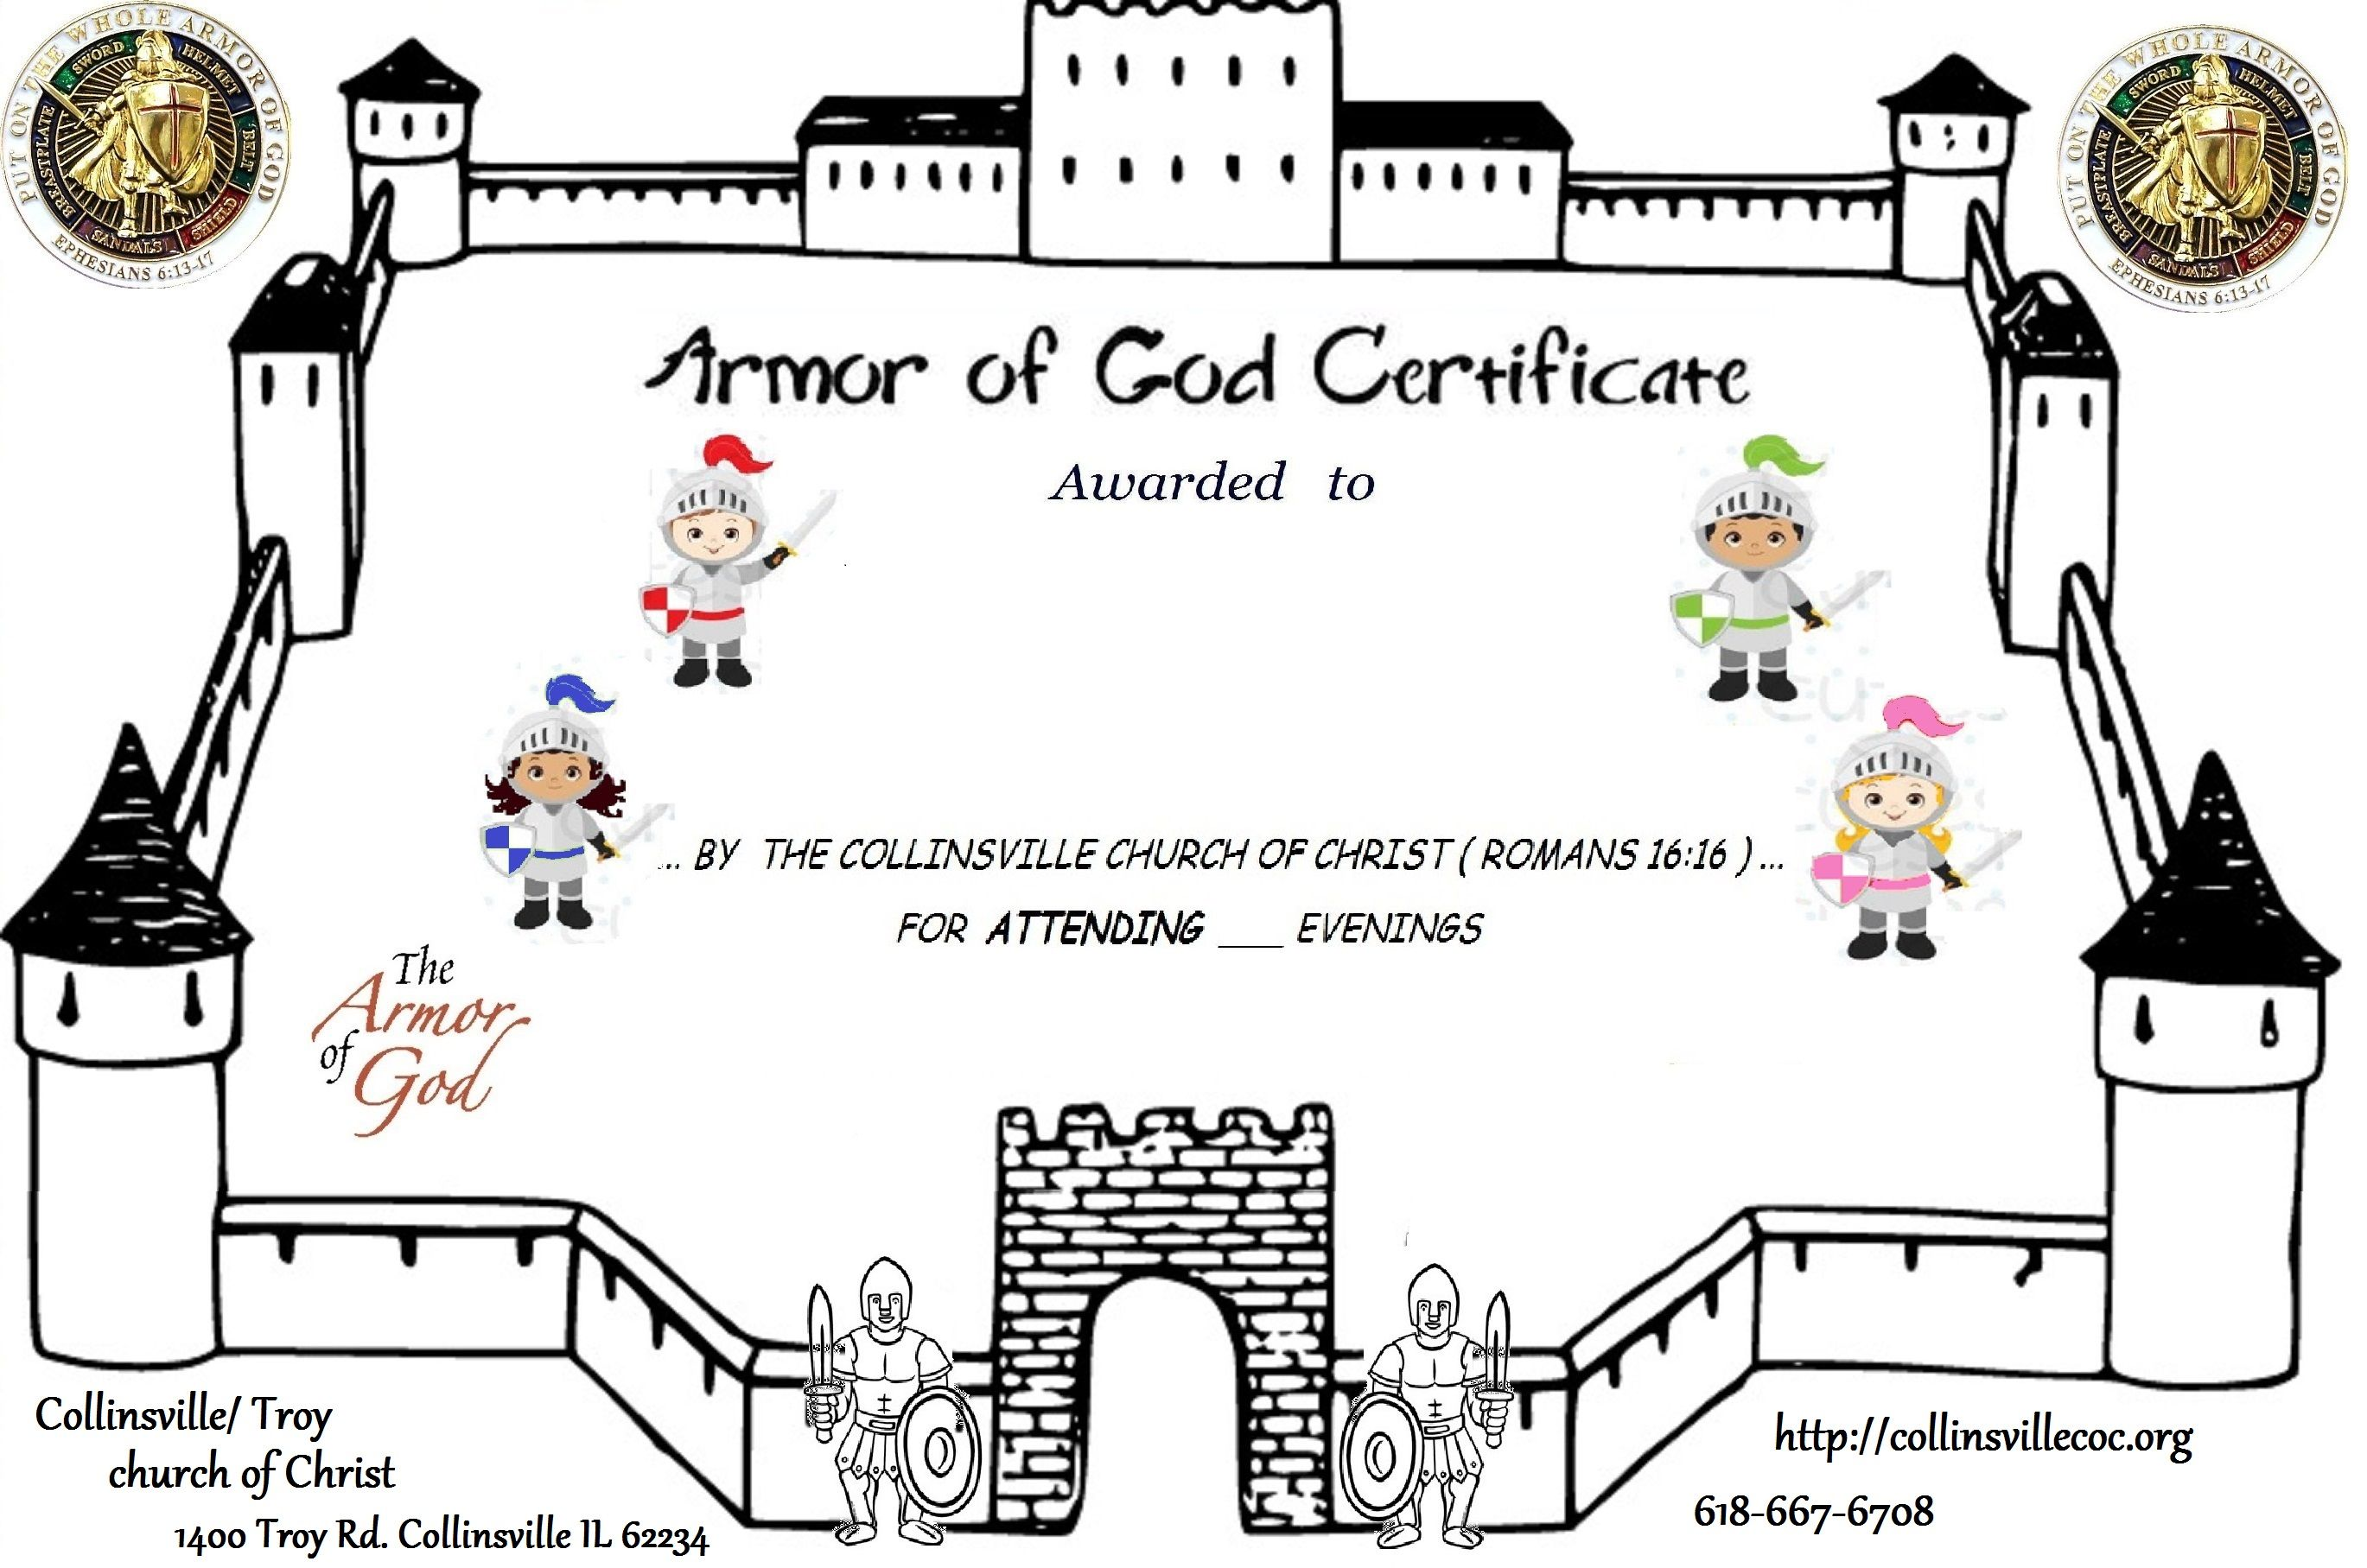 35+ Free Online Bible Study Course With Certificate